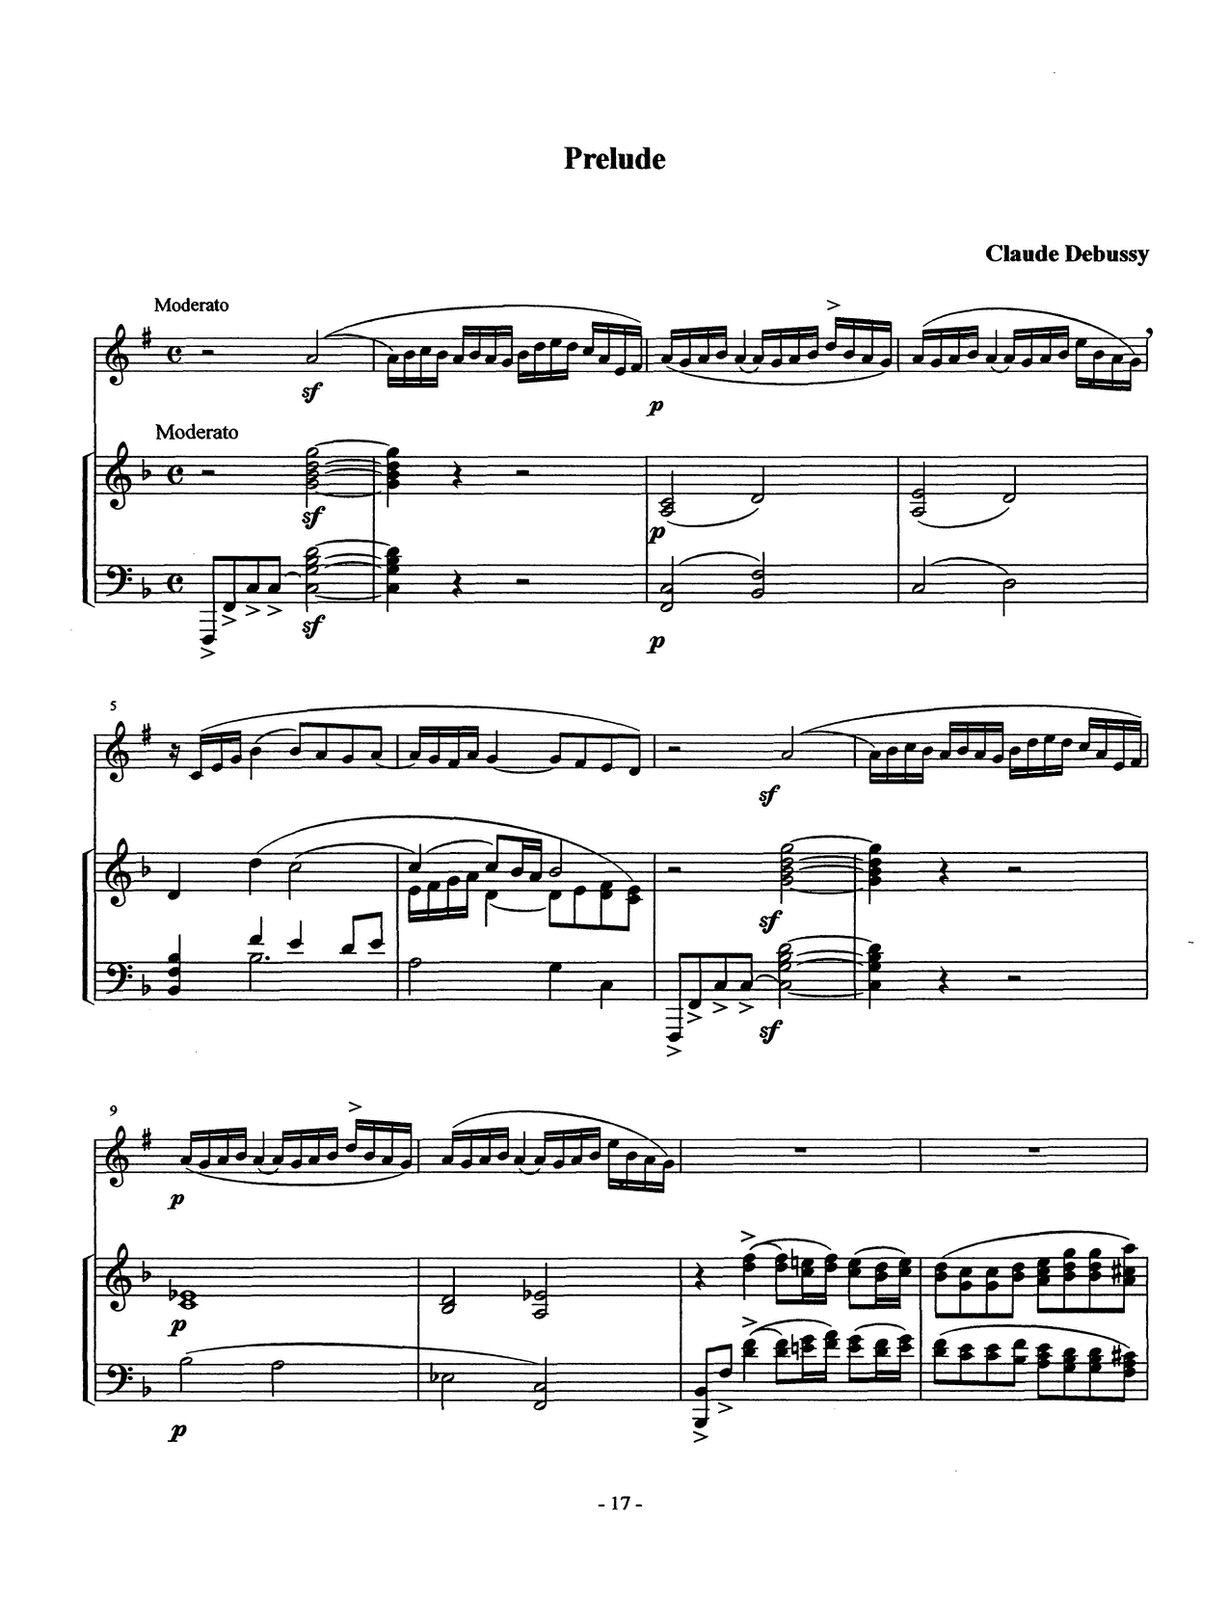 Ponzo, Lyrical Pieces for Trumpet and Piano_000033